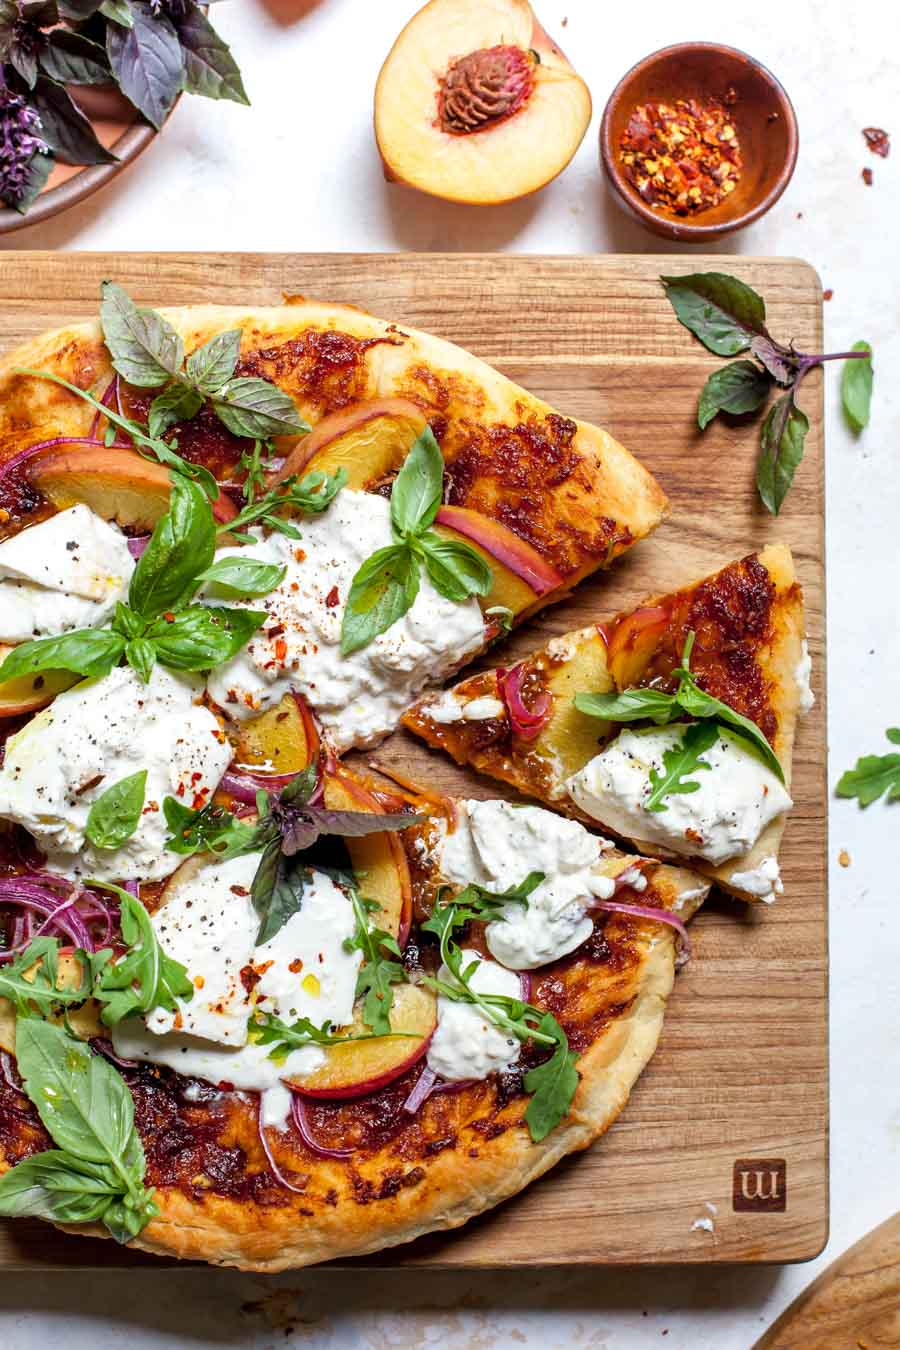 Stove top pizza with peach-BBQ sauce, fresh sliced peaches, red onion, burrata, and basil